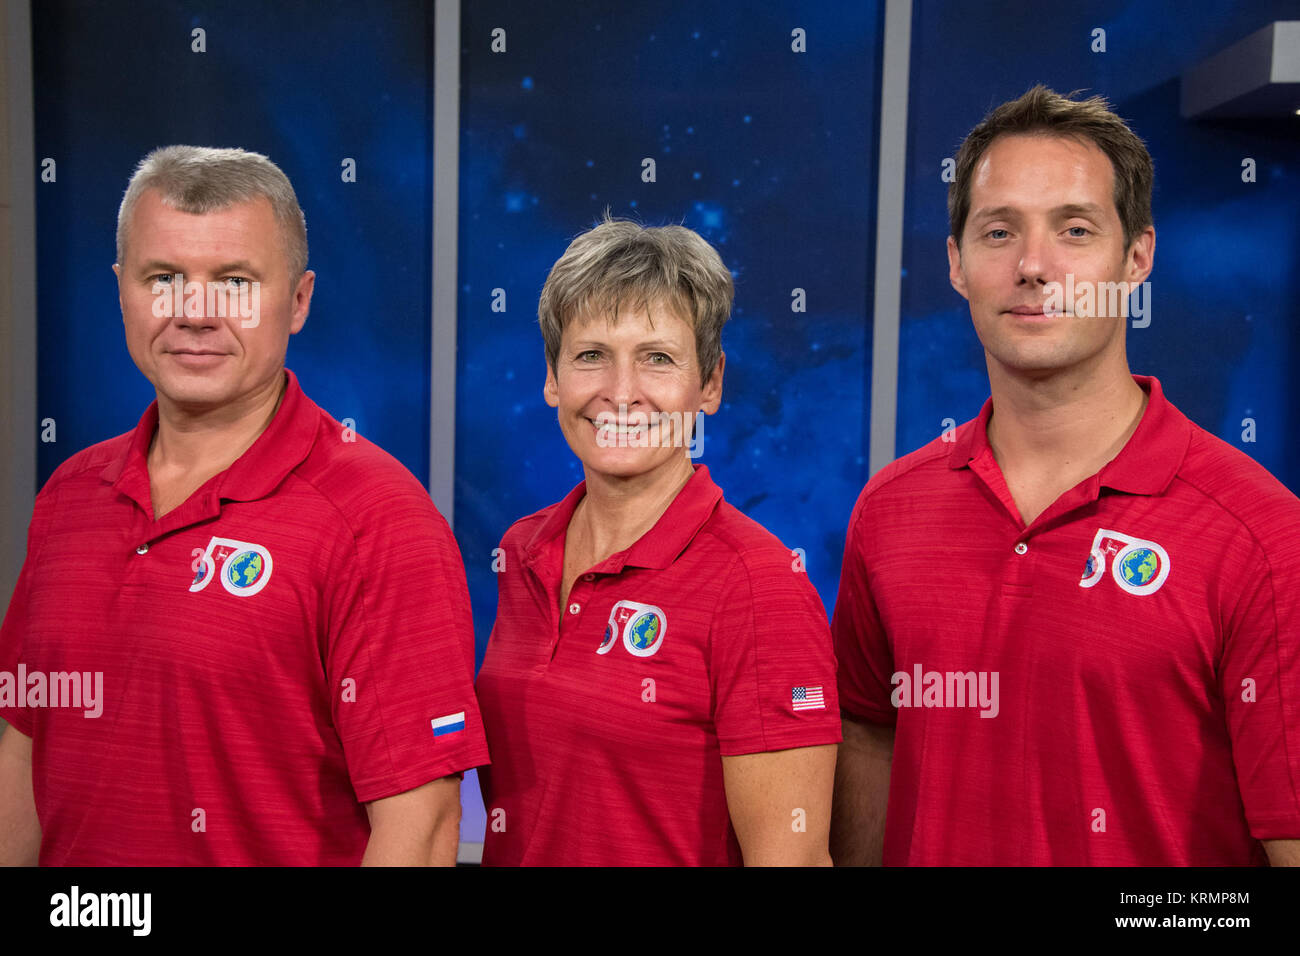 Date: 08-30-16 Location: Bldg 2 South, Studio B Subject: Expedition 50/51 Crew Press Conference with Peggy Whitson, - Stock Image